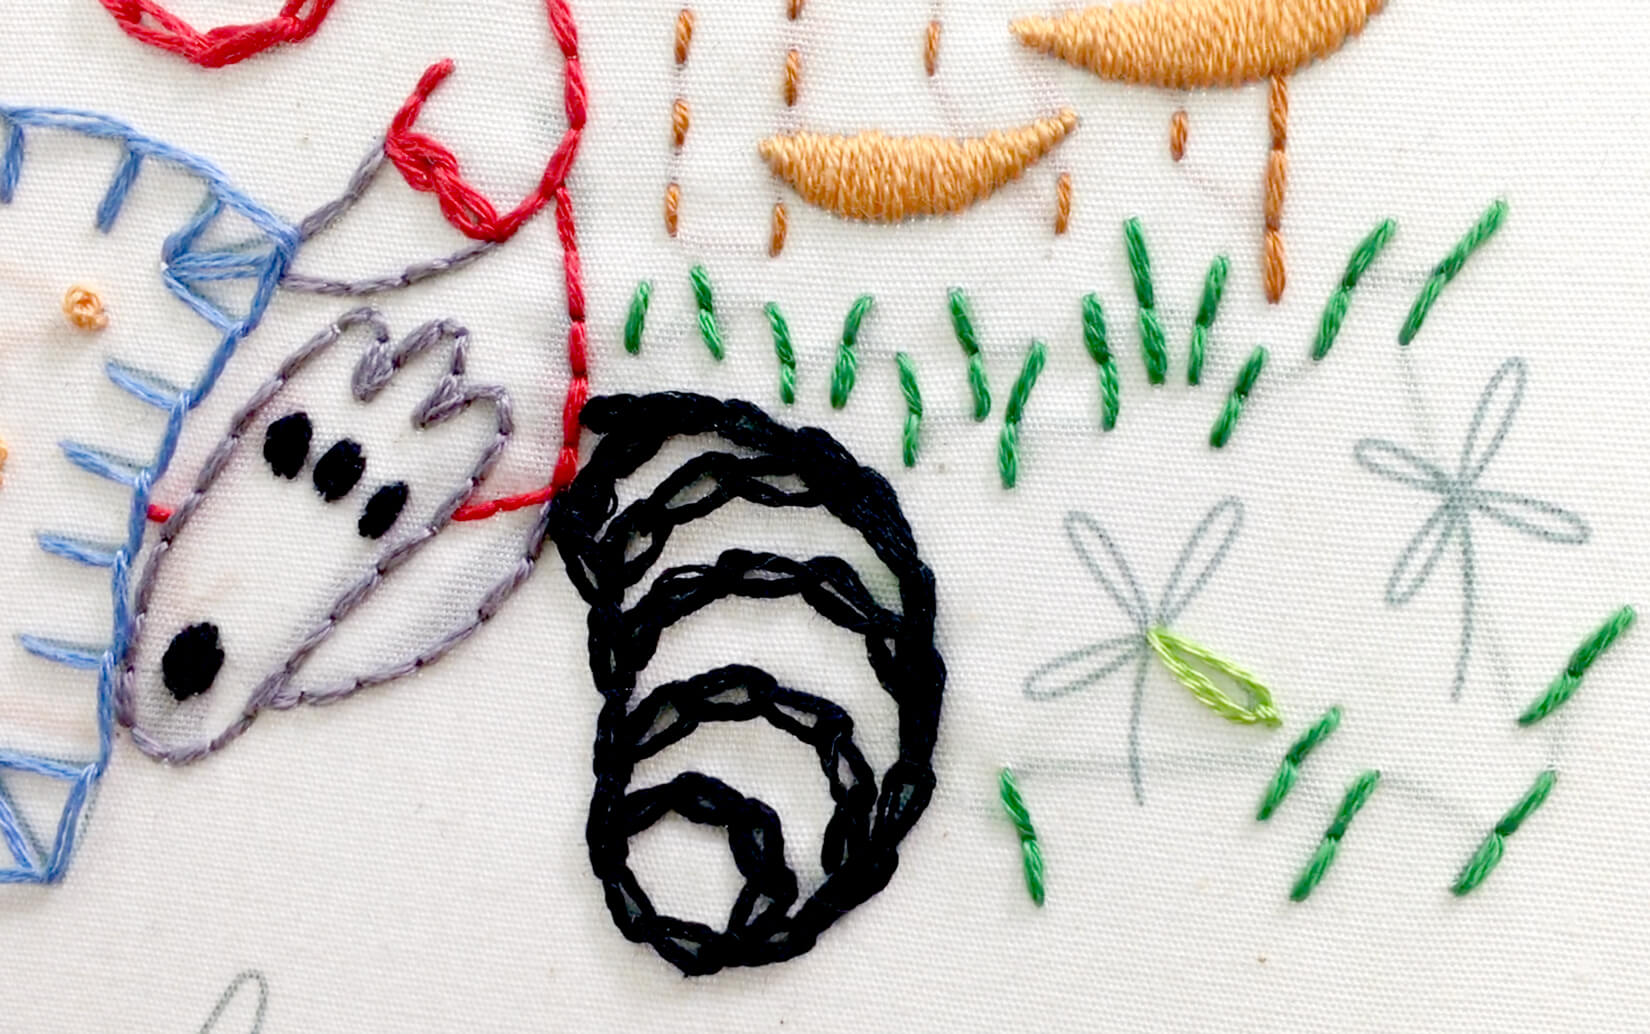 Single/detached chain stitch in the Stitching Raccoon Sampler